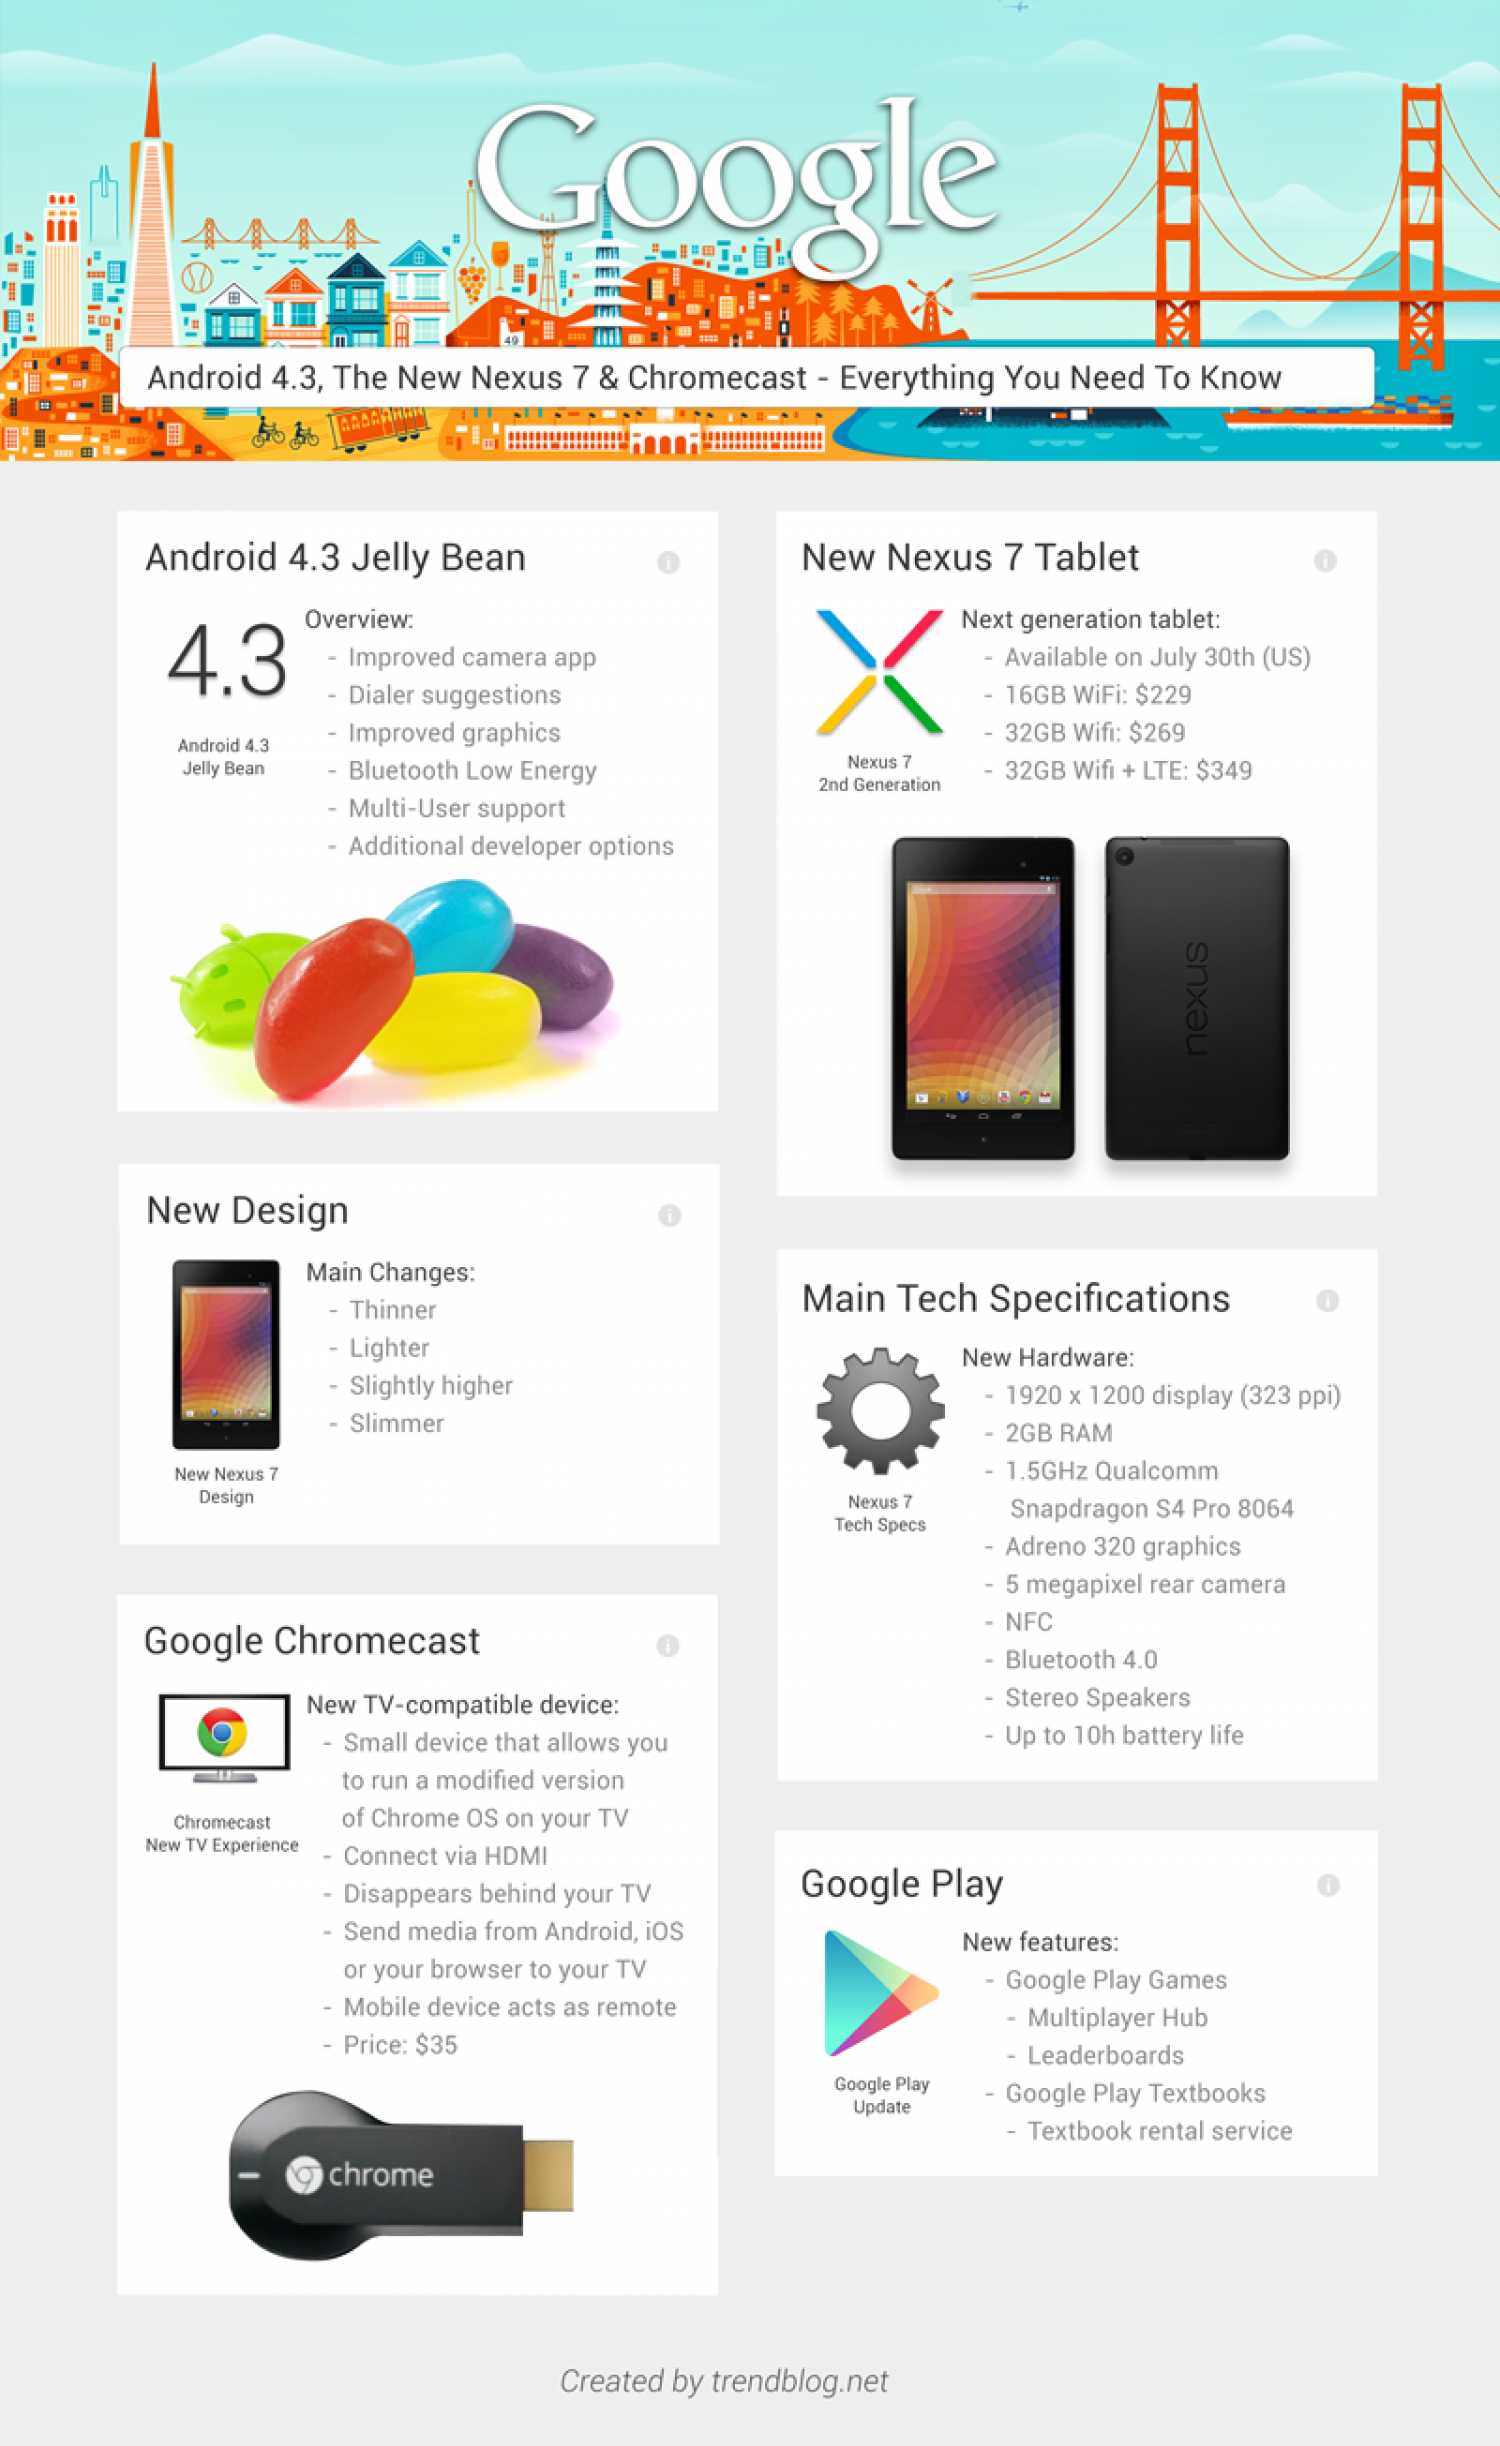 Google's Announcements In A Neat Google-Now Design Infographic